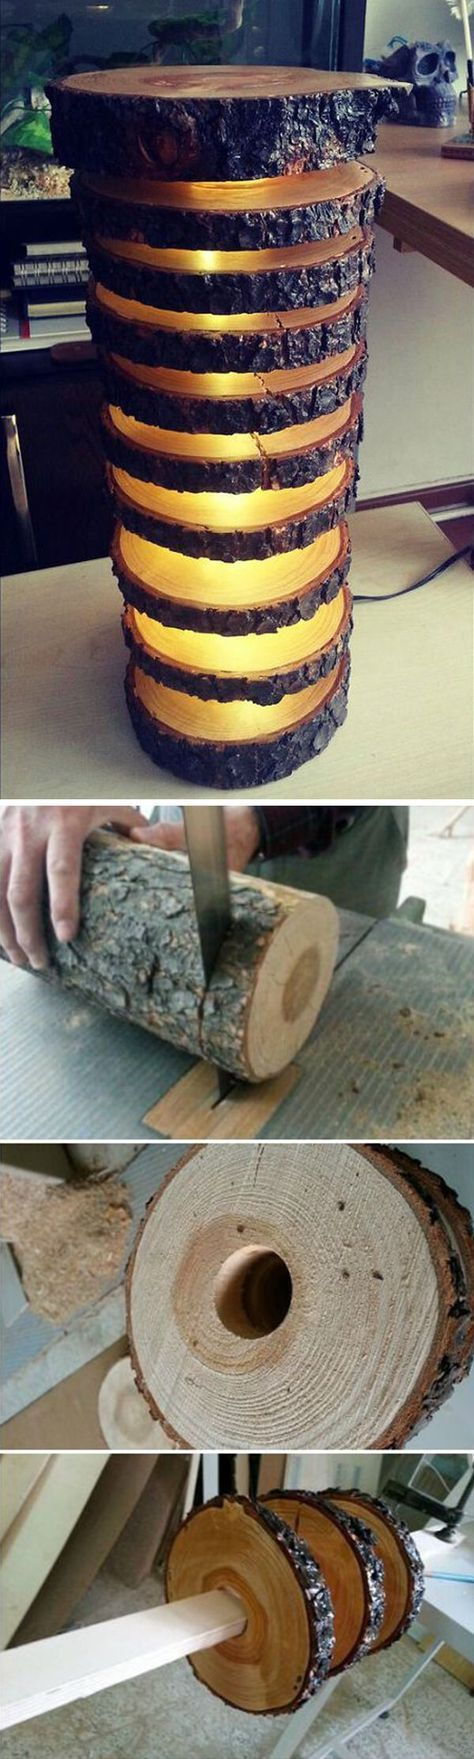 32 creative diy wood craft projects you should try on useful diy wood project ideas id=33577